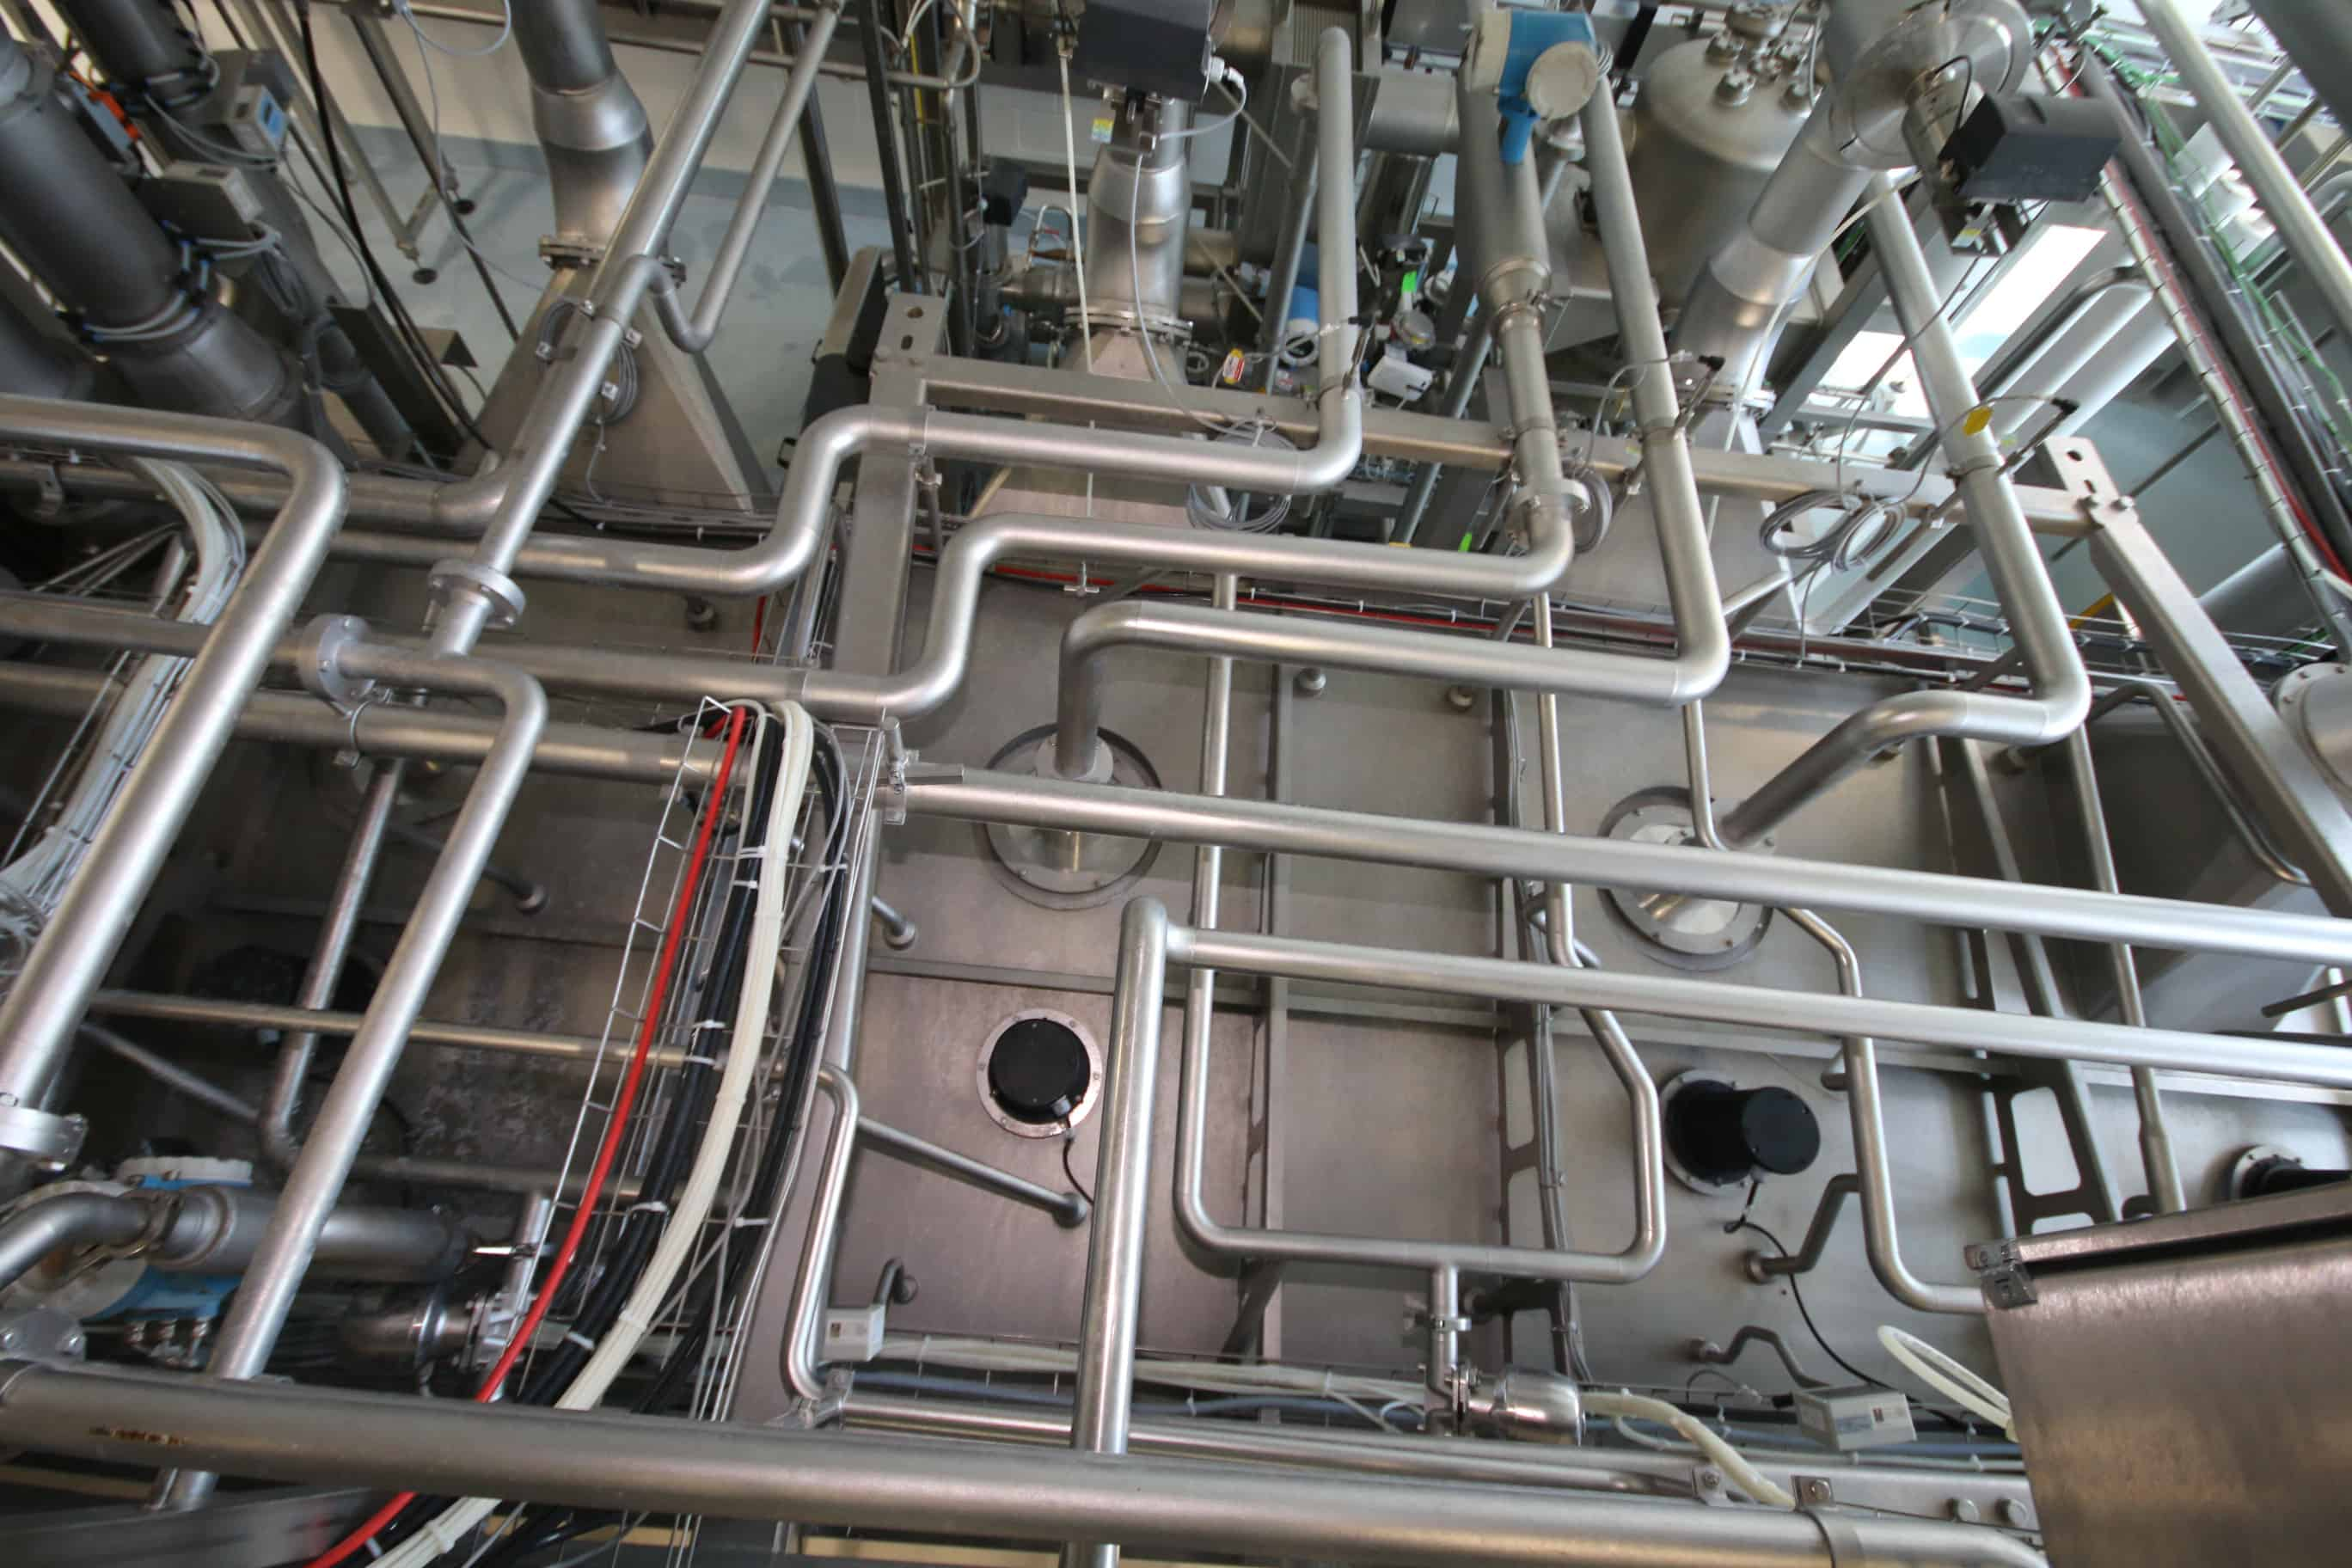 2009 Krones PET-Aseptic Filling System,Type:  PET-Asept D, S/N K567-006 K122-845,  with 10-Head Filling Station, 4-Head Foil Seal Station, and 4-Head Capping Station, with Valve/Pump Skid Including (2) Fristam 7-1/2 hp Centrifugal Pumps, M/N FPR742-145, with S/S Filters, S/S Air Valves, and S/S Piping, with Caverion (6) Compartment Filter System, Type:  3X1-H14/H14-200C, with S/S Computer/Controls Station, with (2) Spare Part Carts with Parts